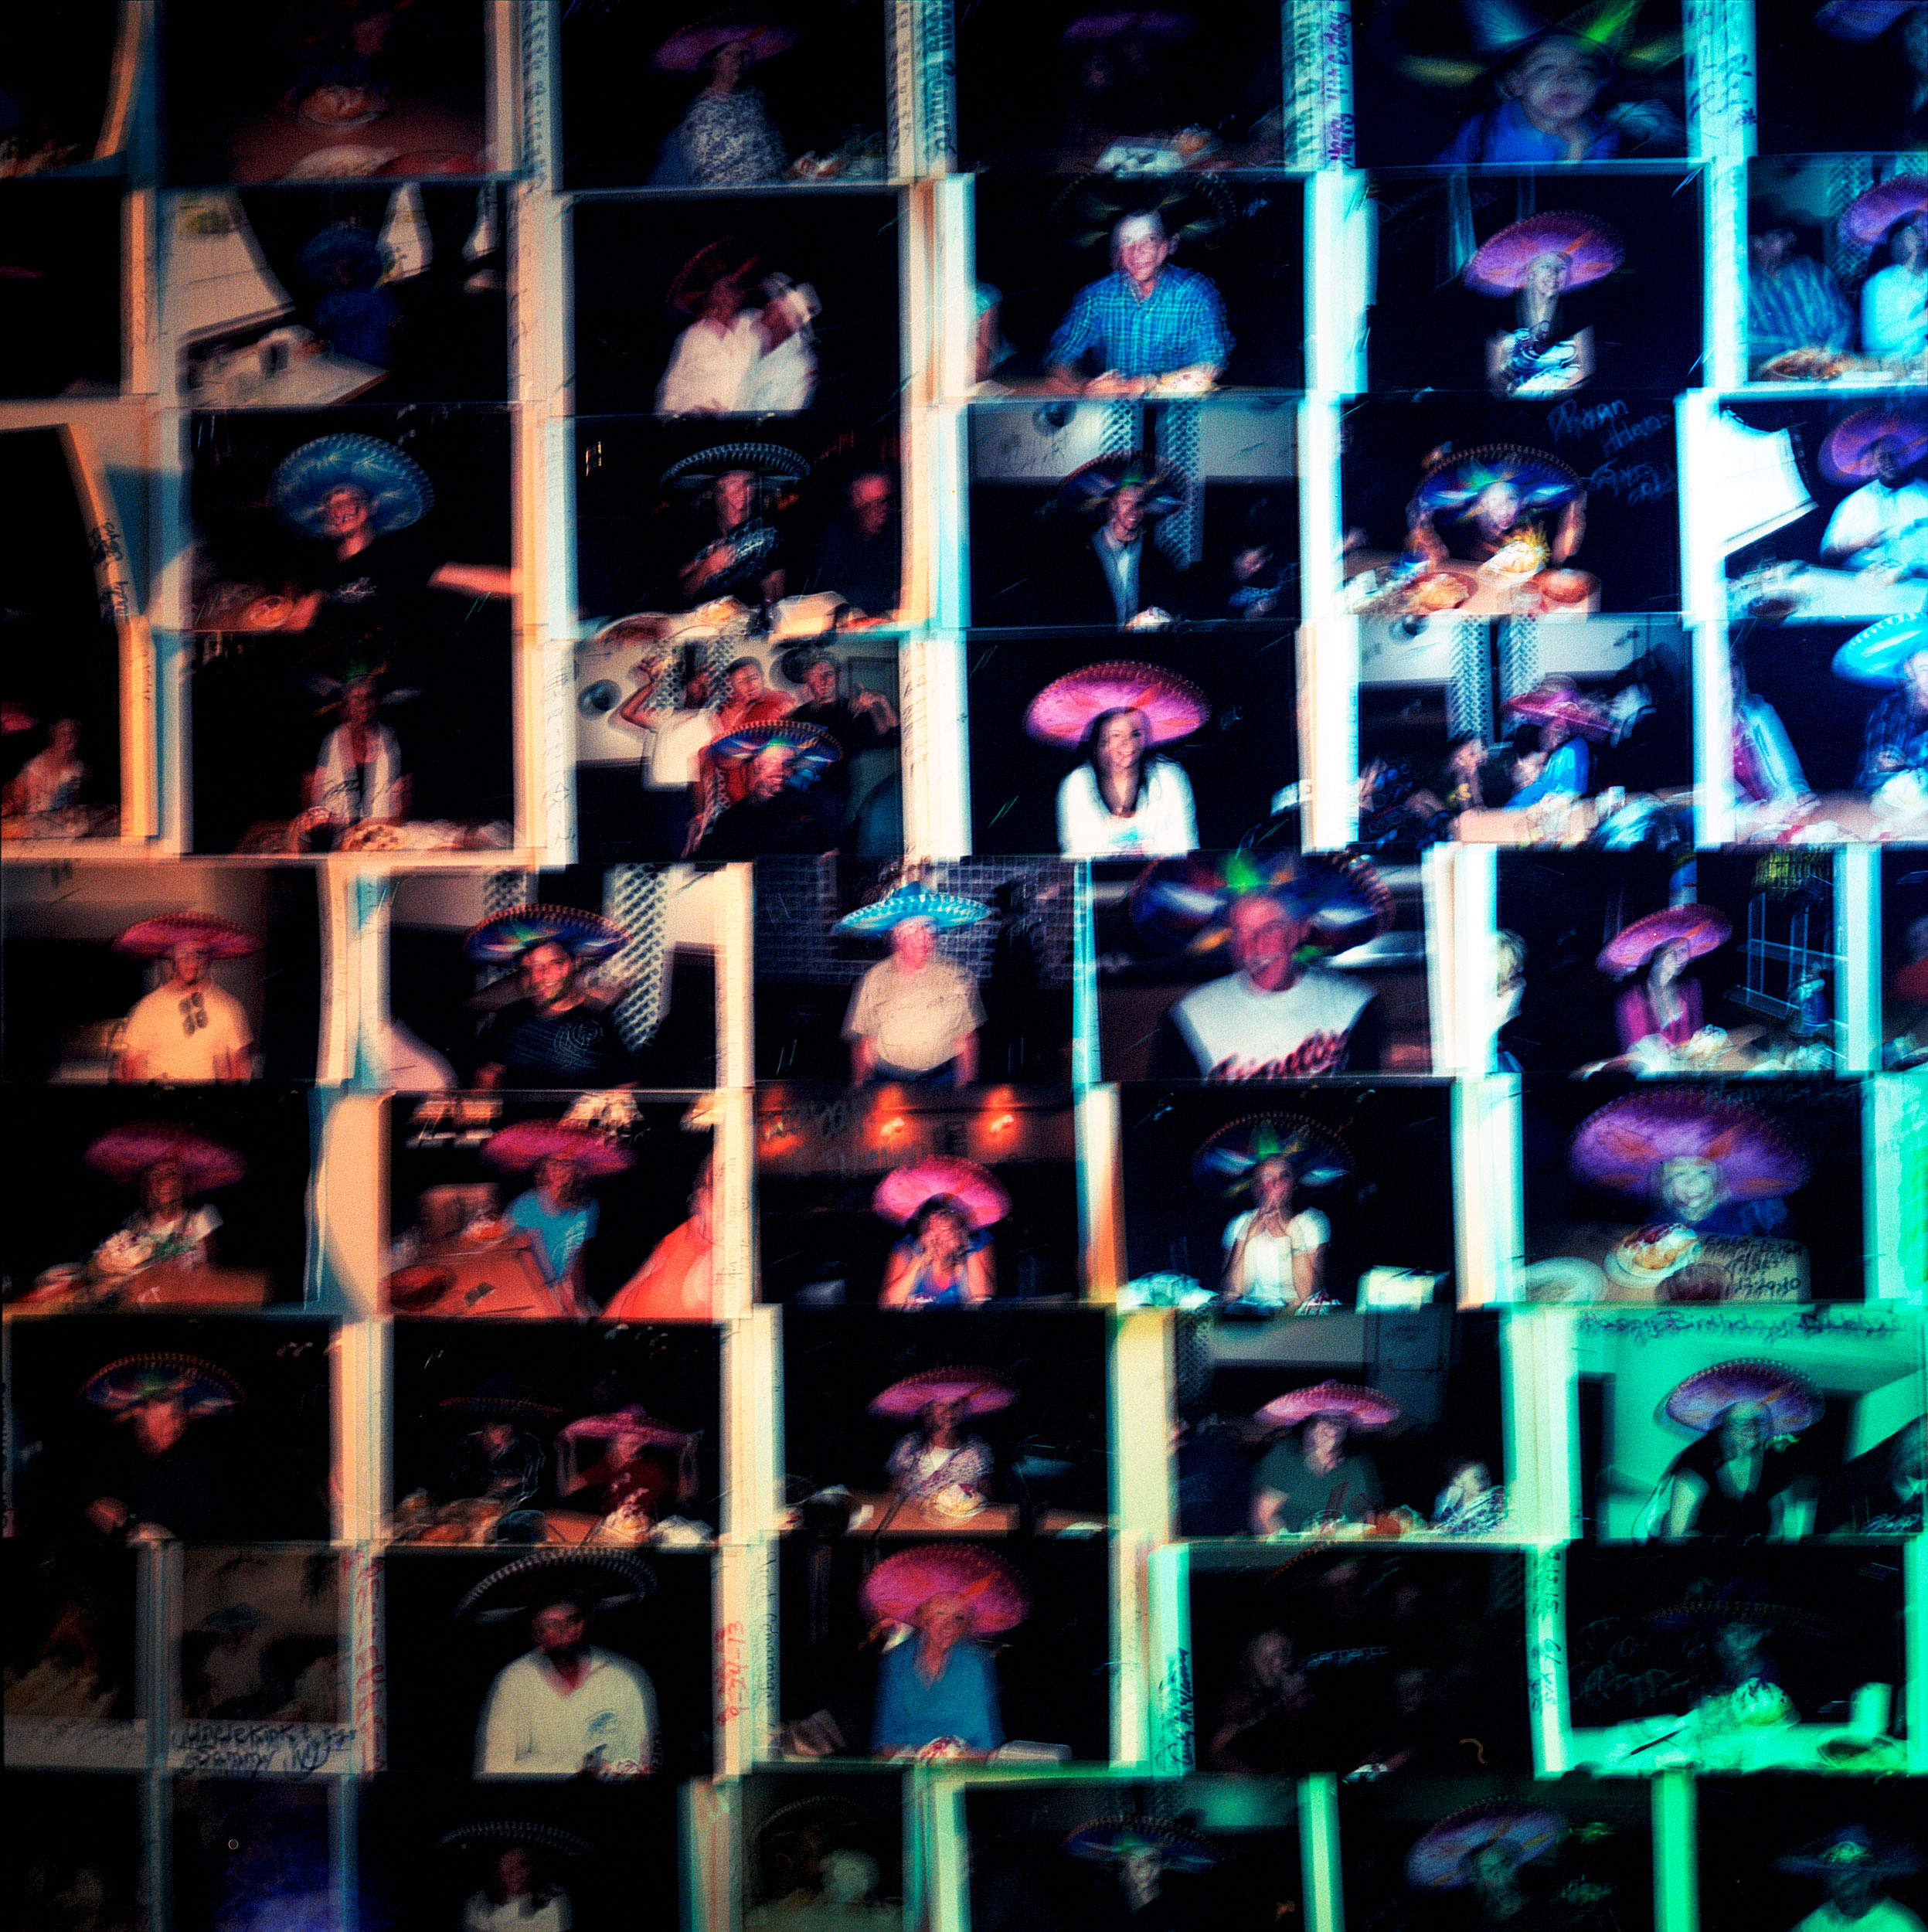 A wall of polaroids at La Fiesta restaurant in Ely, Nevada made on a dinner break on a cross country trip from California to Maryland on US Highway 50.